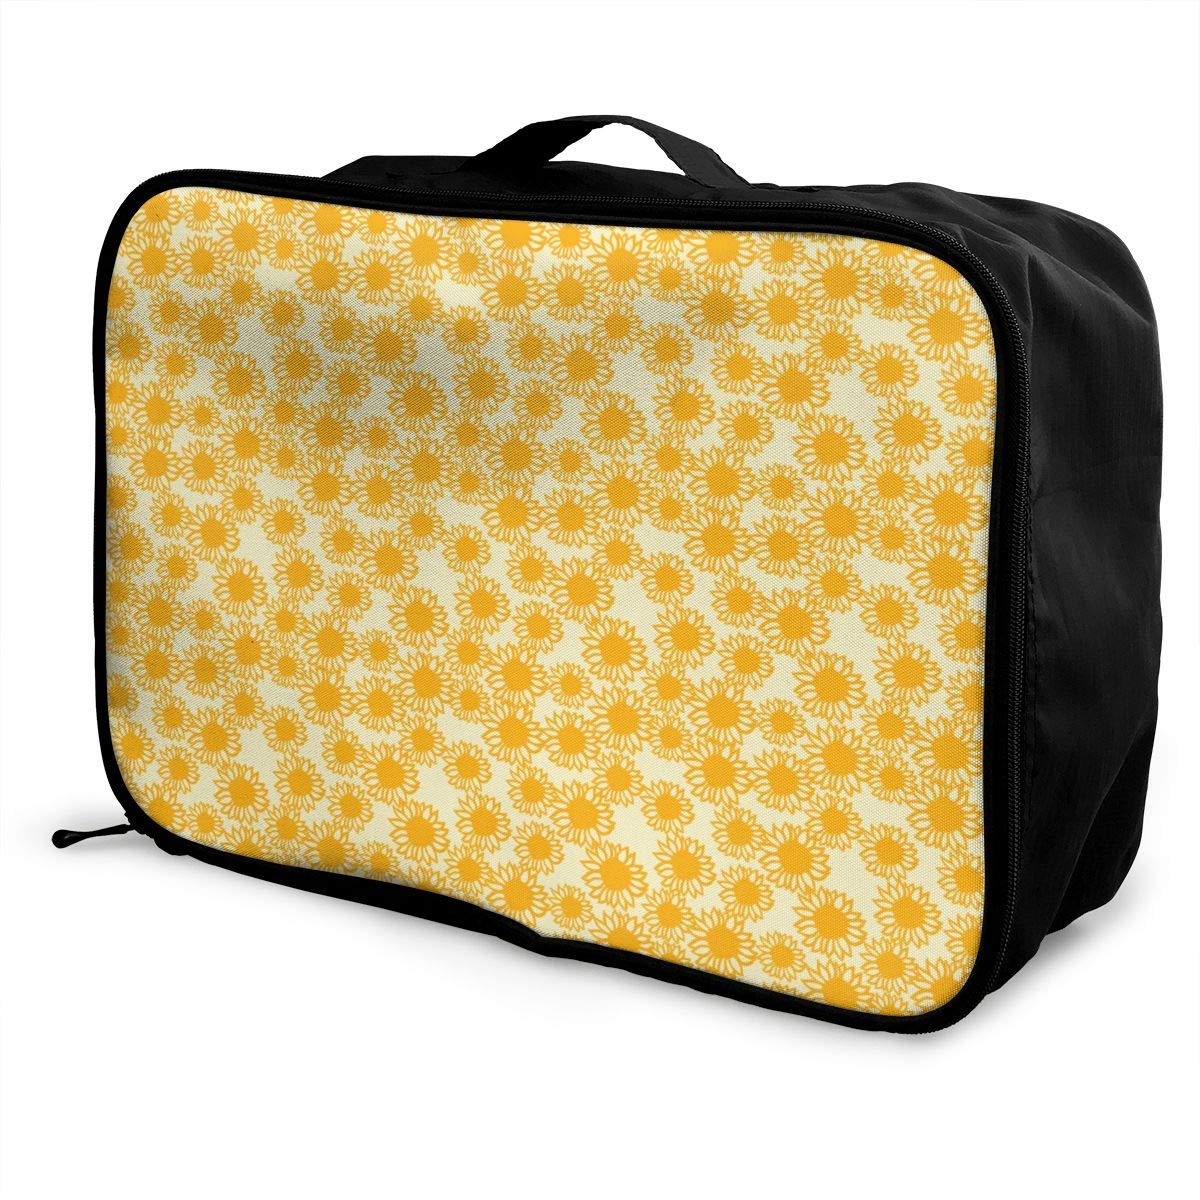 Yellow Sunflower Lightweight Large Capacity Portable Luggage Bag Travel Duffel Bag Storage Carry Luggage Duffle Tote Bag